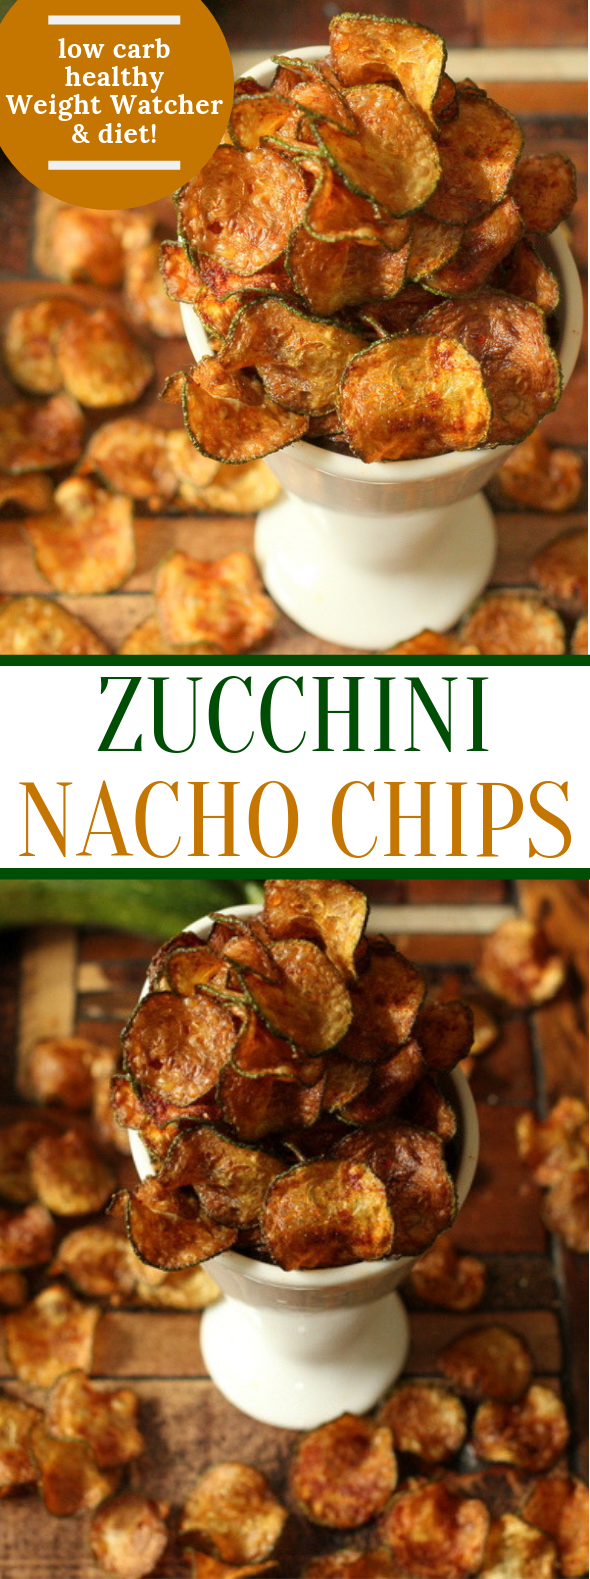 Zucchini Nacho Chips #lowcarb #dietrecipes